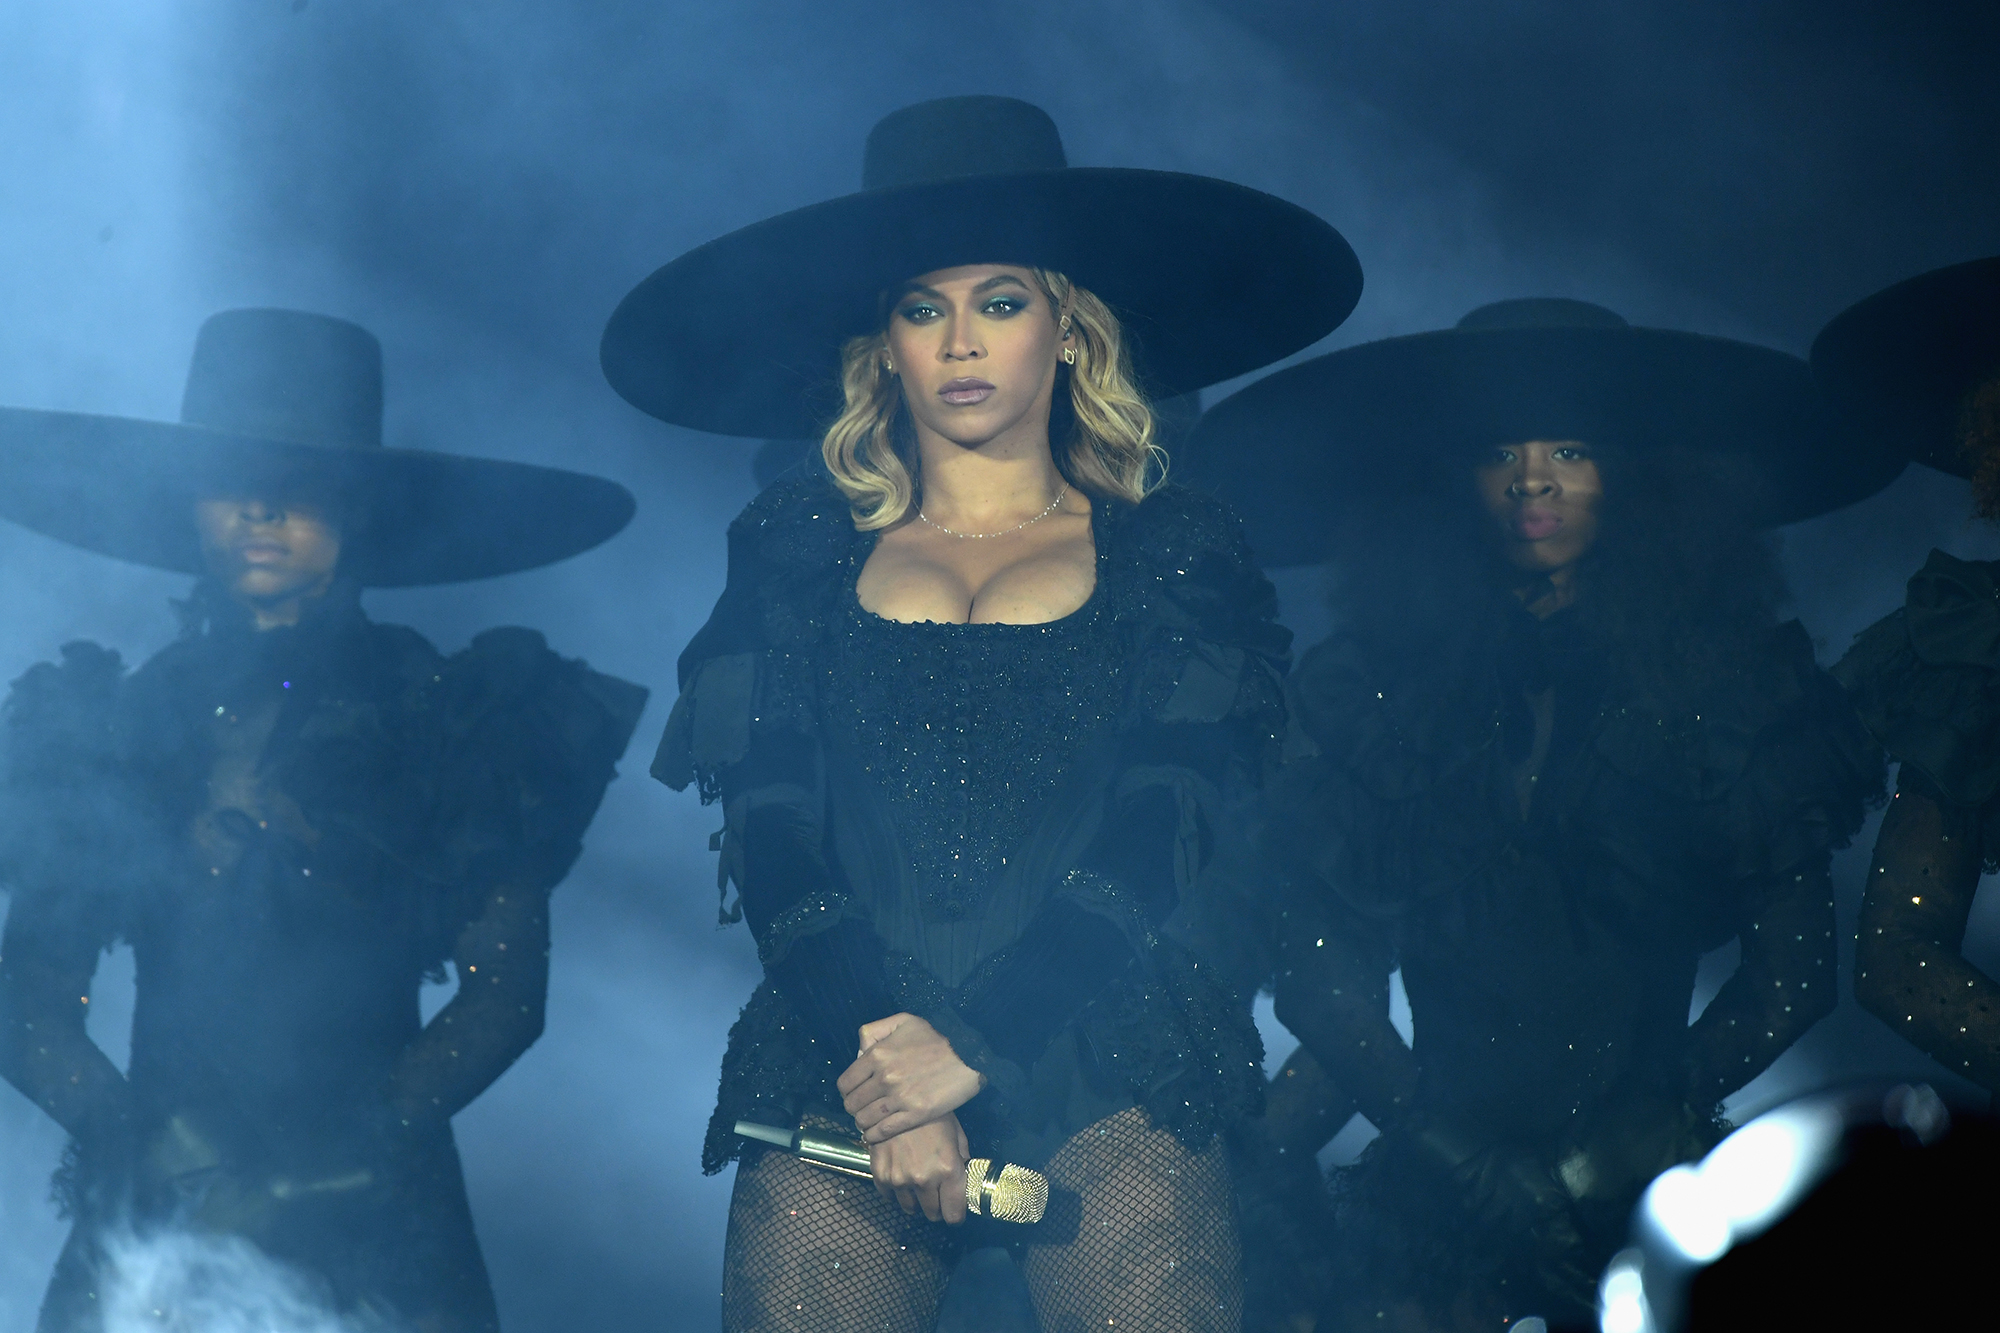 Beyonce performs on stage during  The Formation World Tour  at the Citi Field on June 7, 2016 (Photo by Larry Busacca/PW/WireImage For Parkwood Entertainment)